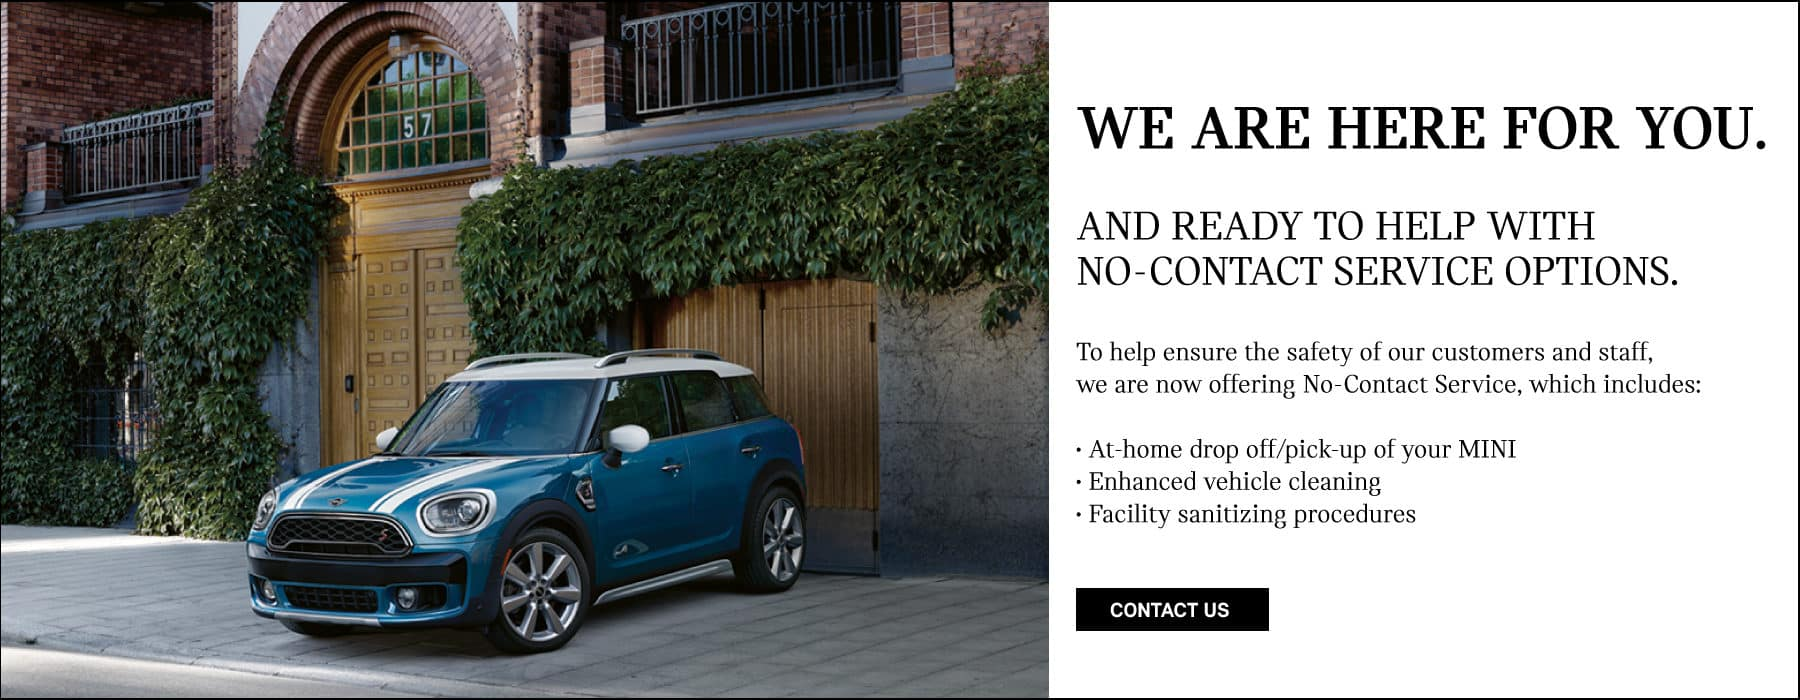 We are here for you and ready to help with no-contact service options. To help ensure the safety of our customers and staff, we are now offering no-contact service, which includes; at home drop-off and pick up of your MINI, enhanced vehicle cleaning adn facility sanitizing procedures. Blue MINI Cooper Countryman parked in front of garage.